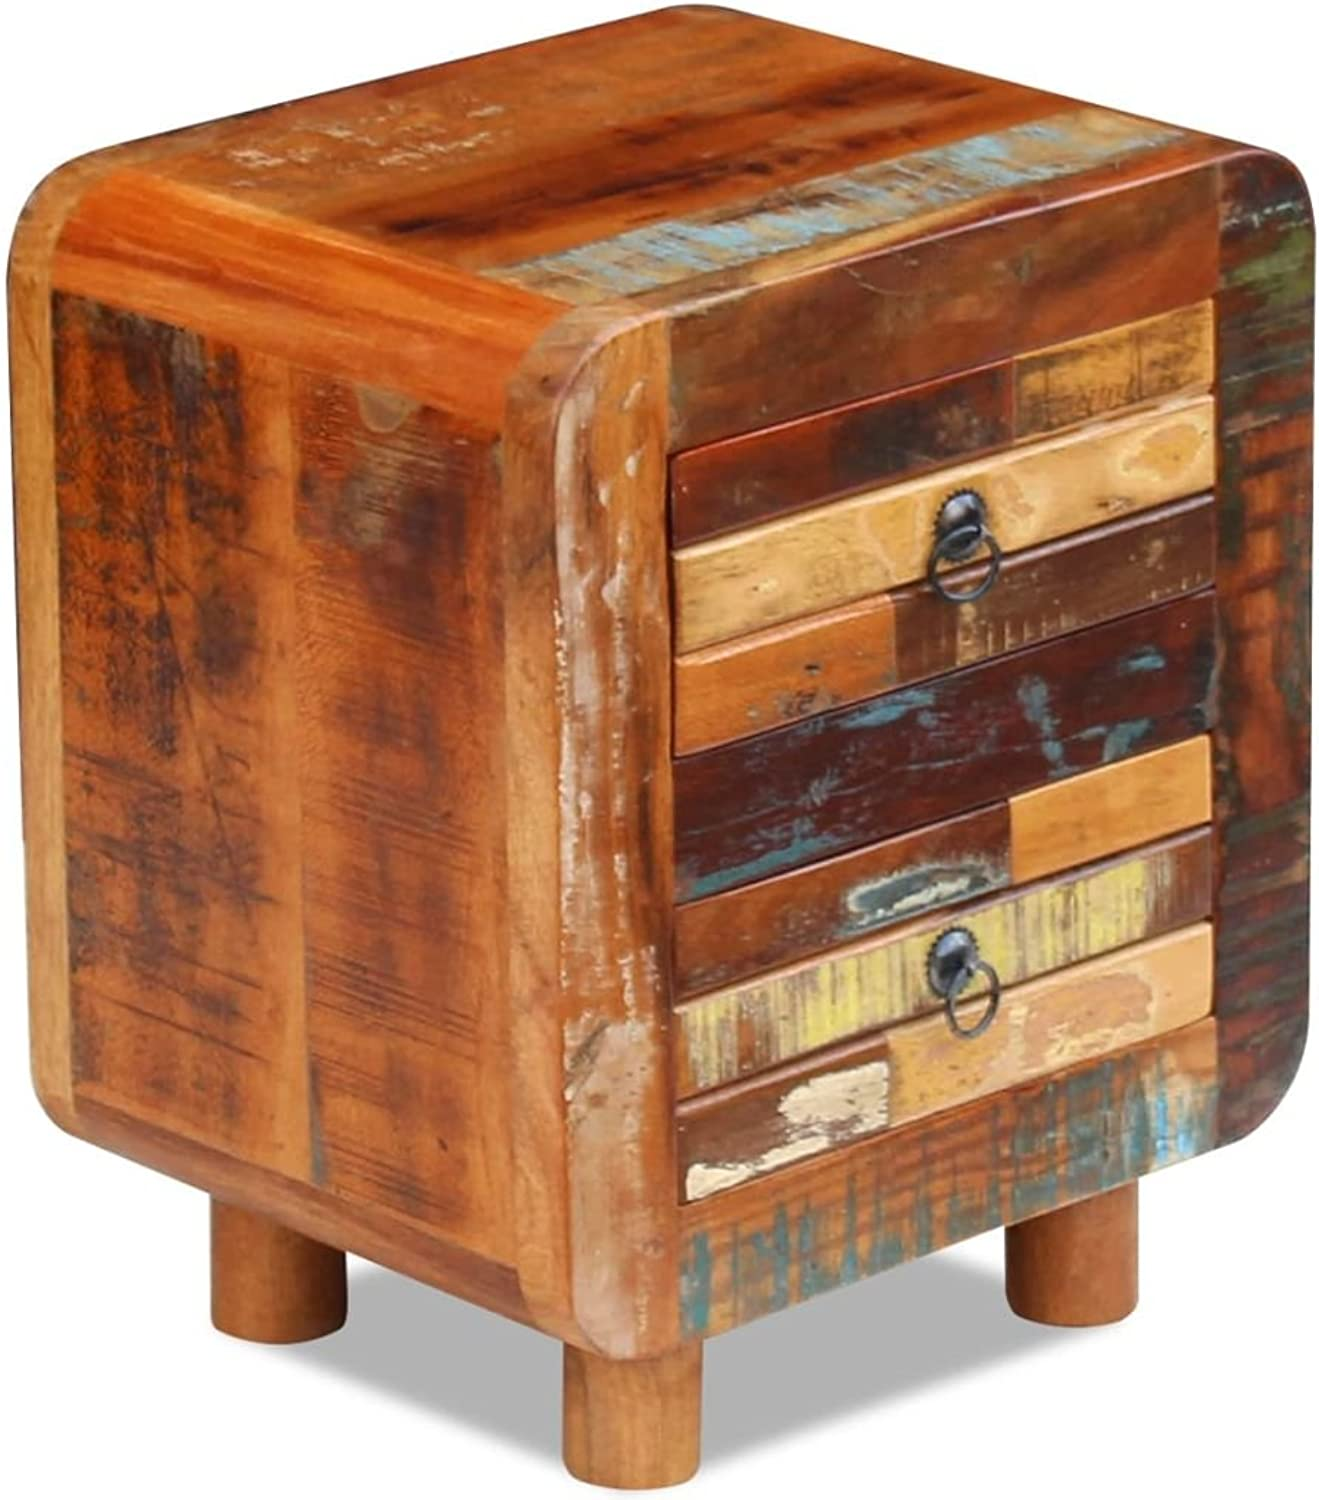 Night Cabinet Bedside Table Table Lamp Stand Drawer Storage Furniture Vintage Solid Reclaimed Wood 17x13x20 inch